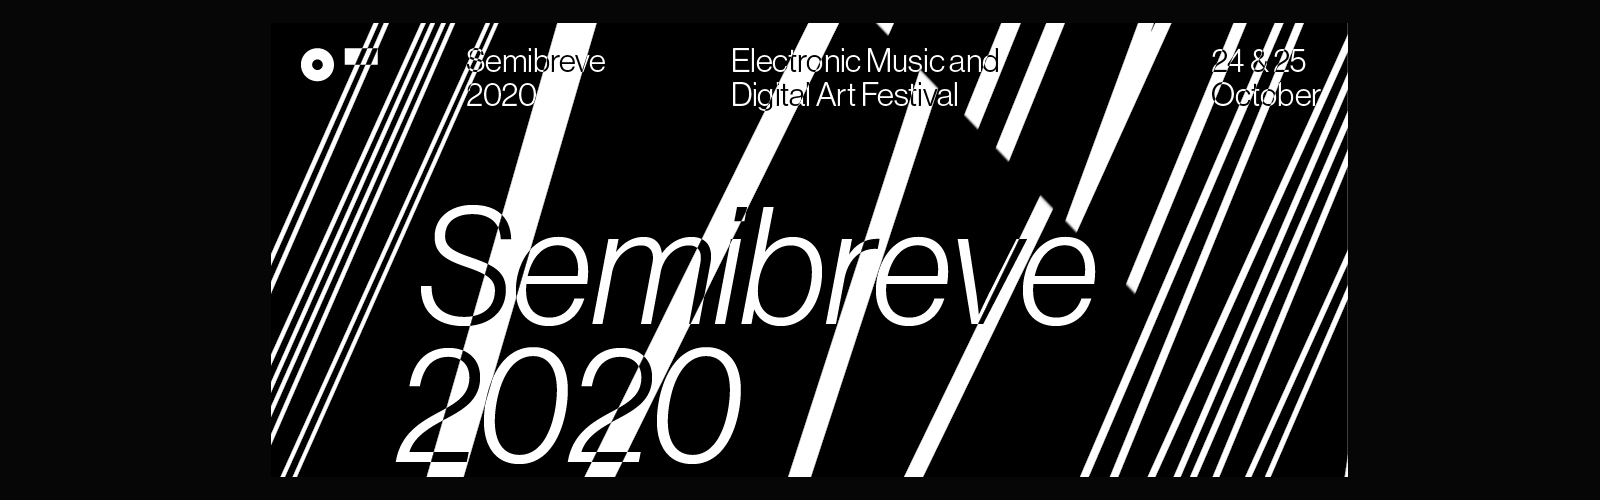 Cartaz do Festival Semibreve 2020.